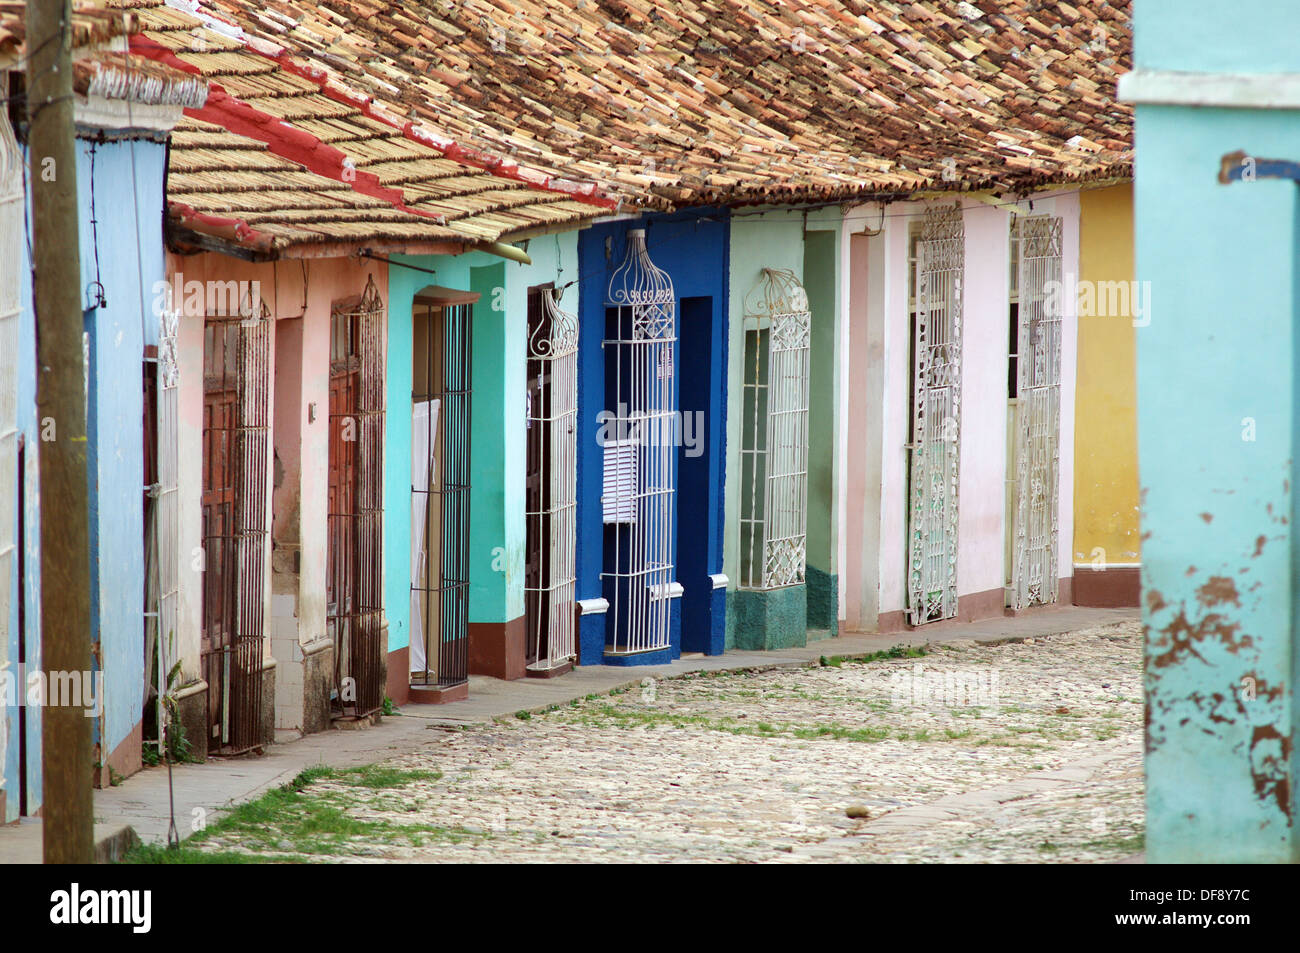 The time-warped town of Trinidad - Cuba - Stock Image